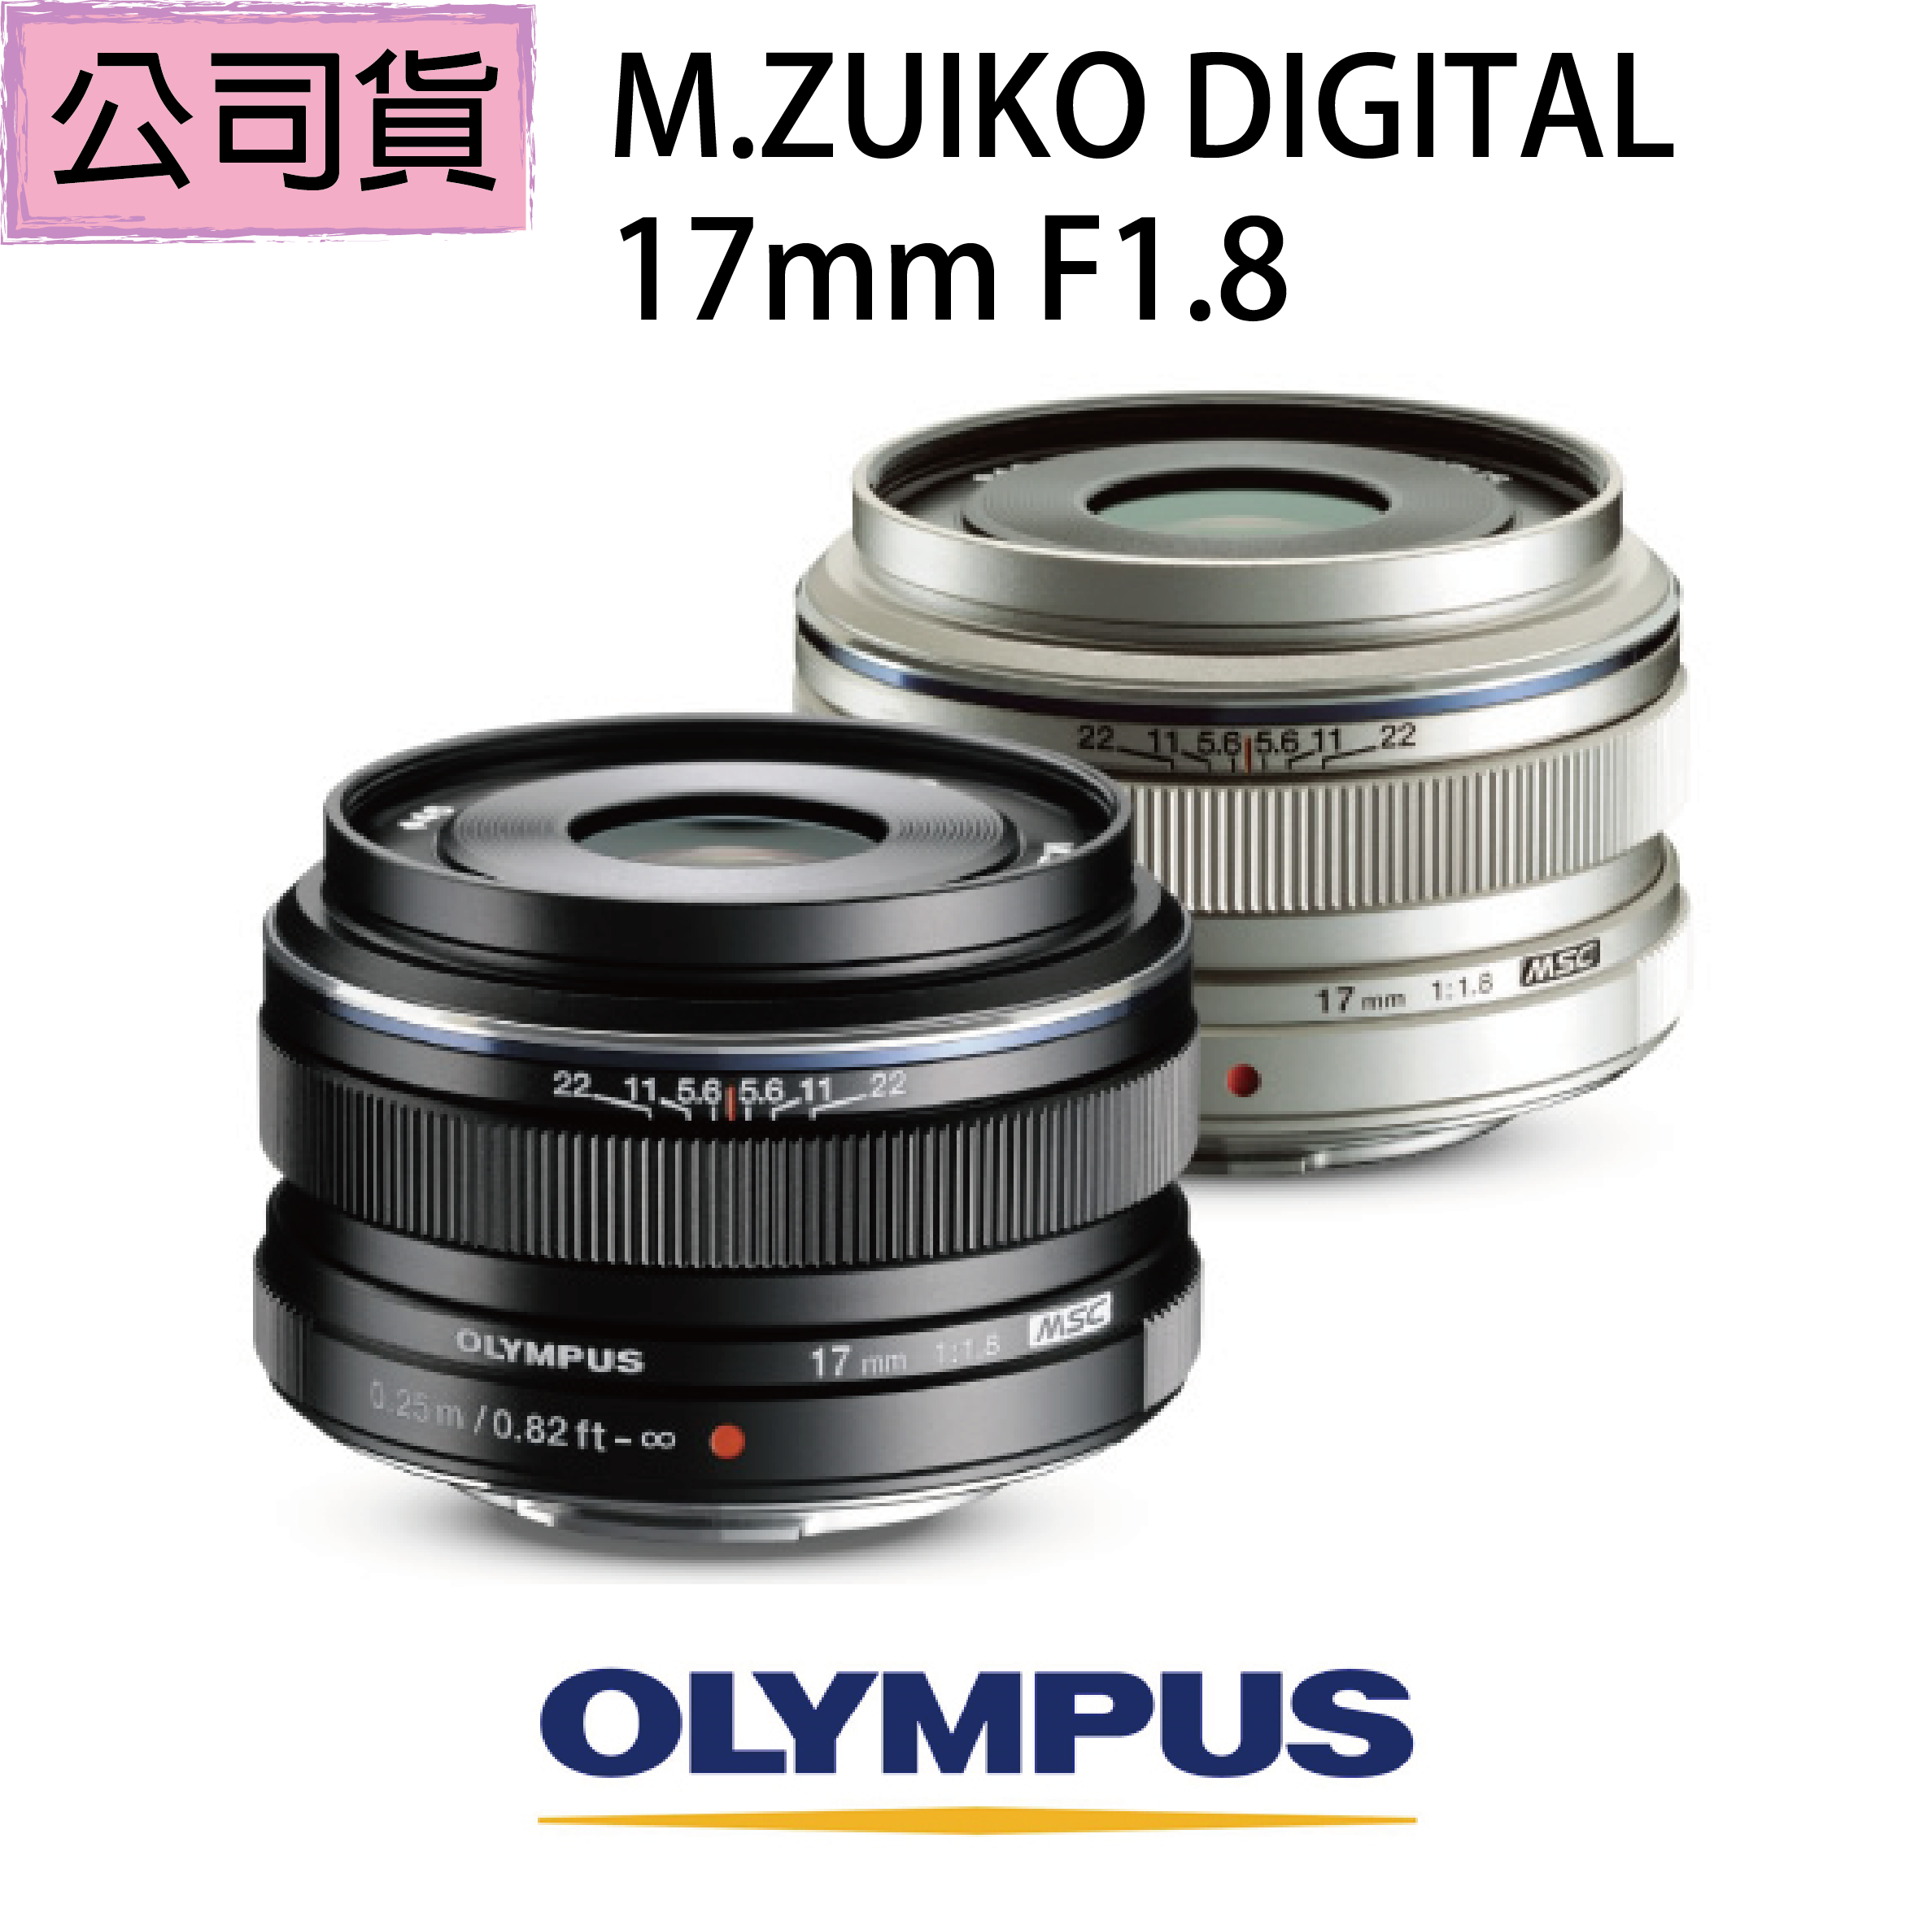 【OLYMPUS】M.ZUIKO DIGITAL 17mm F1.8 EW-M1718 大光圈定焦鏡(公司貨)